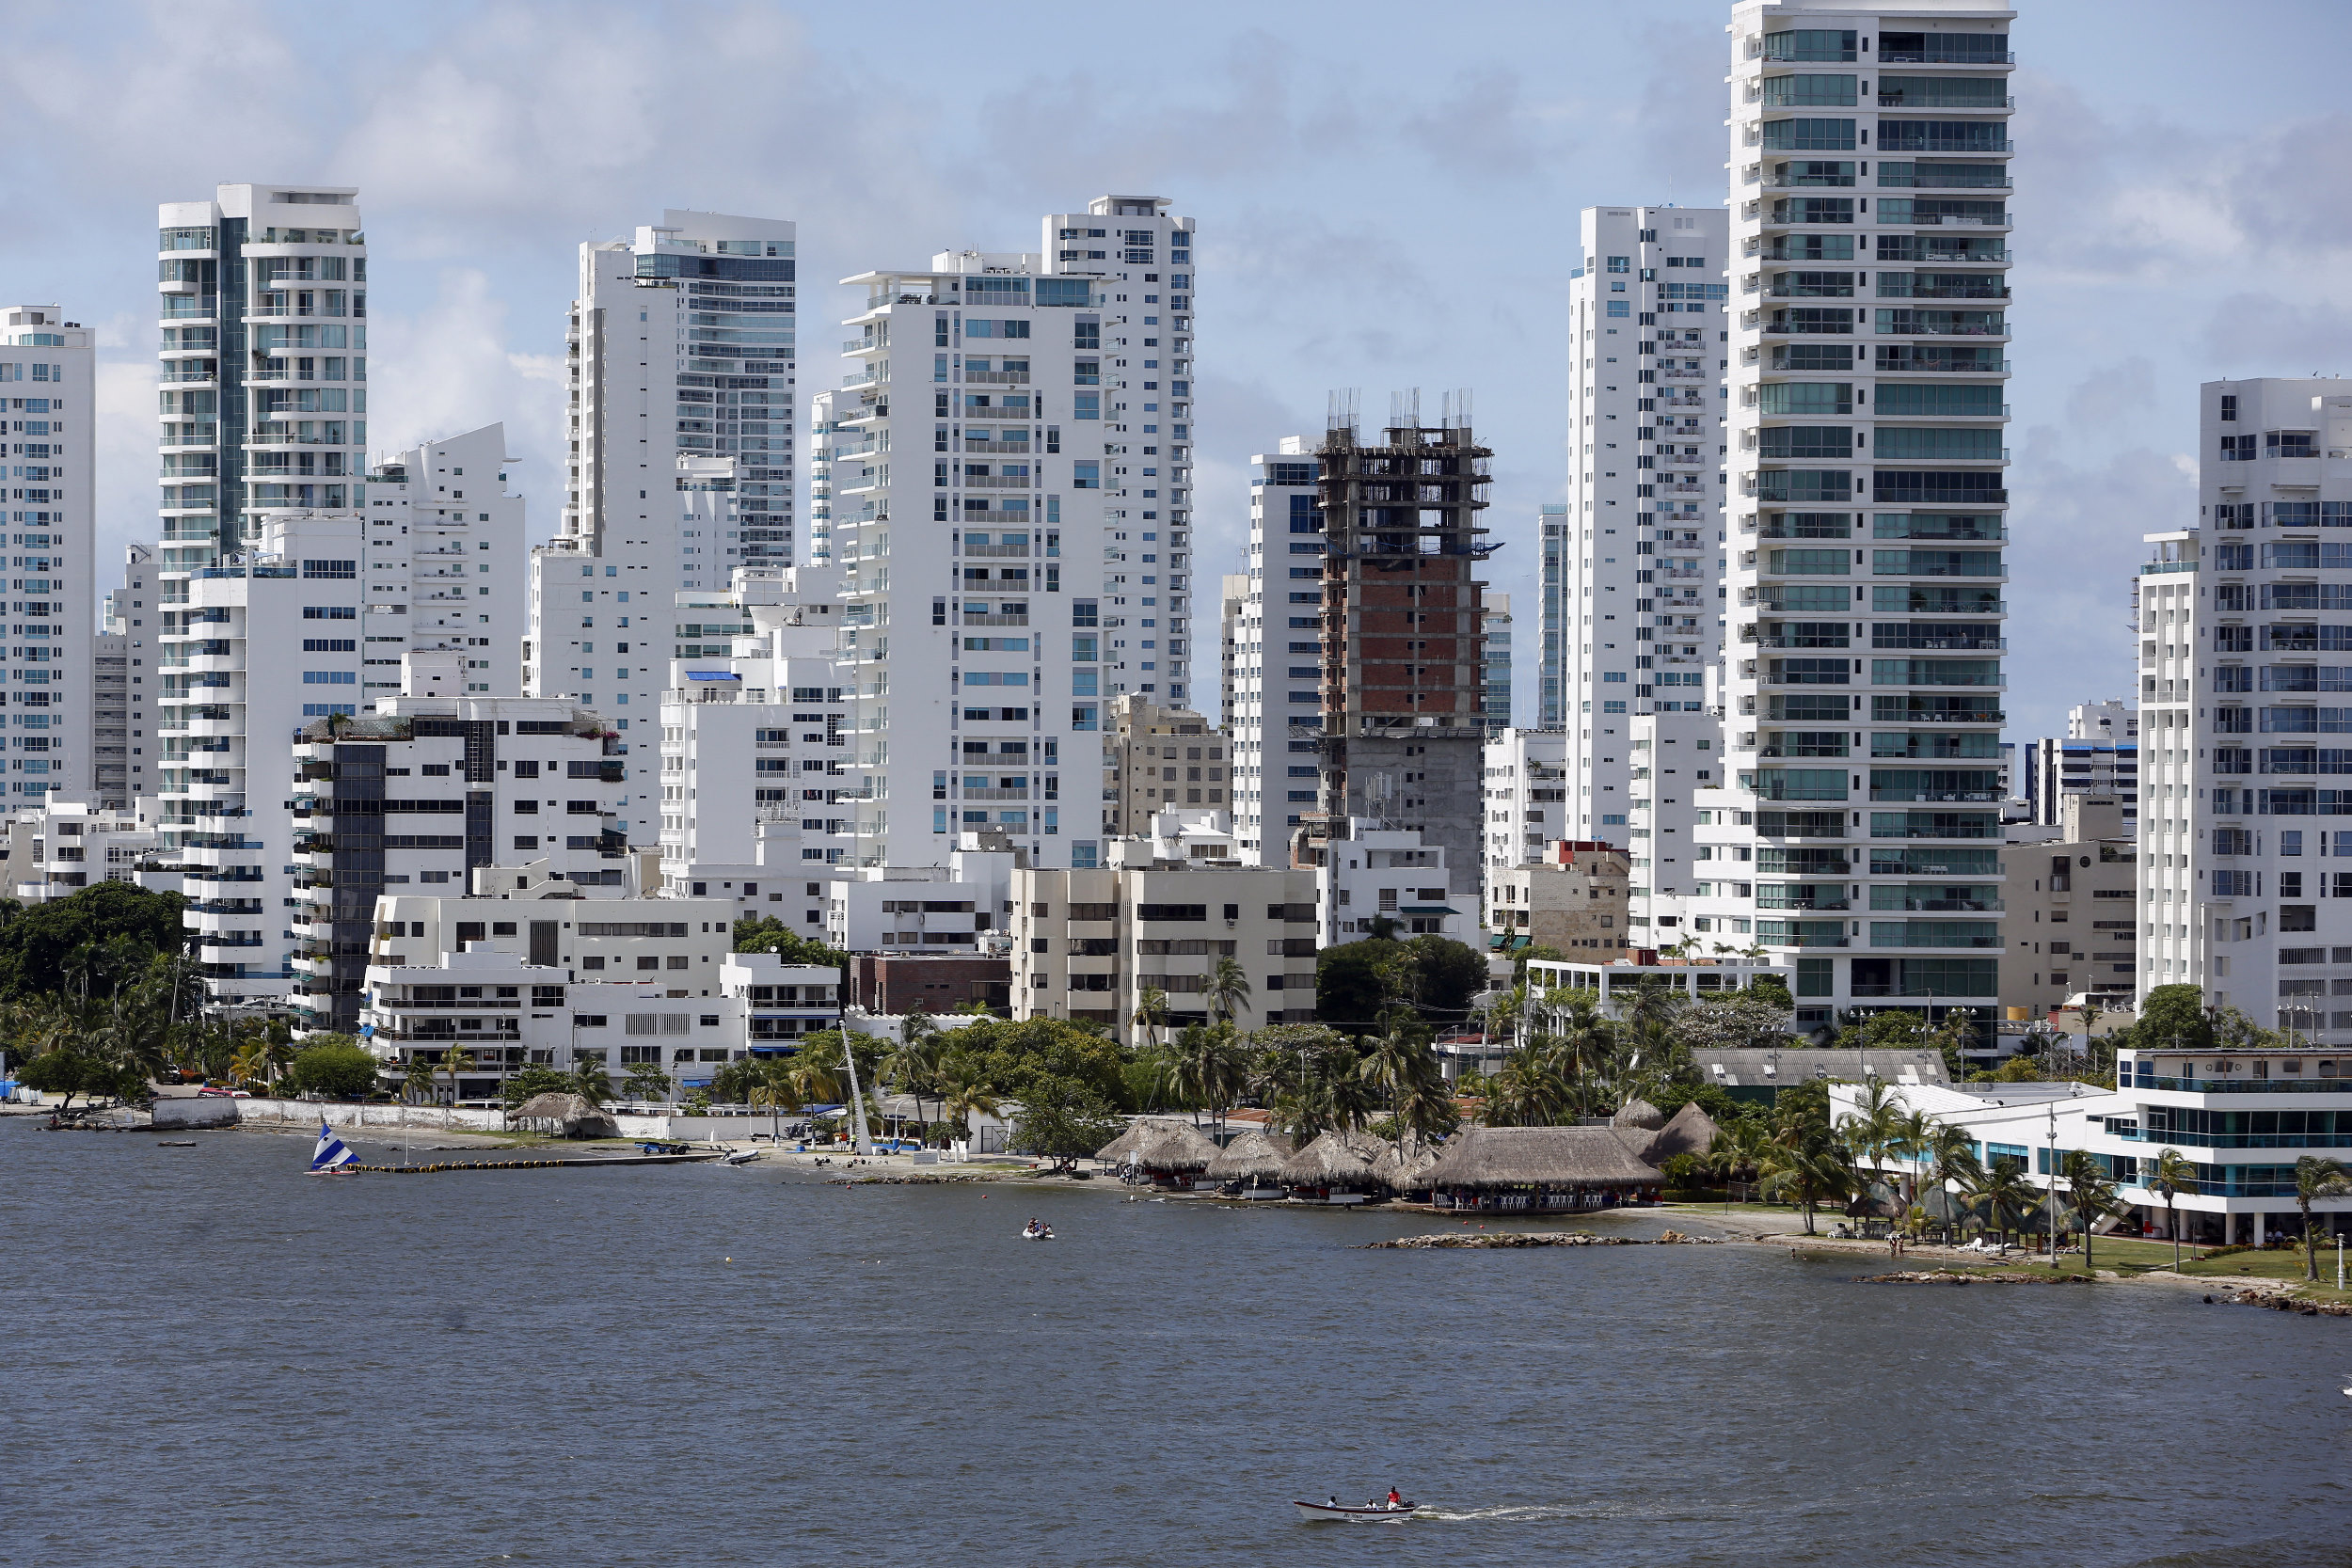 Colombia Cartagena Skyline Water Boten